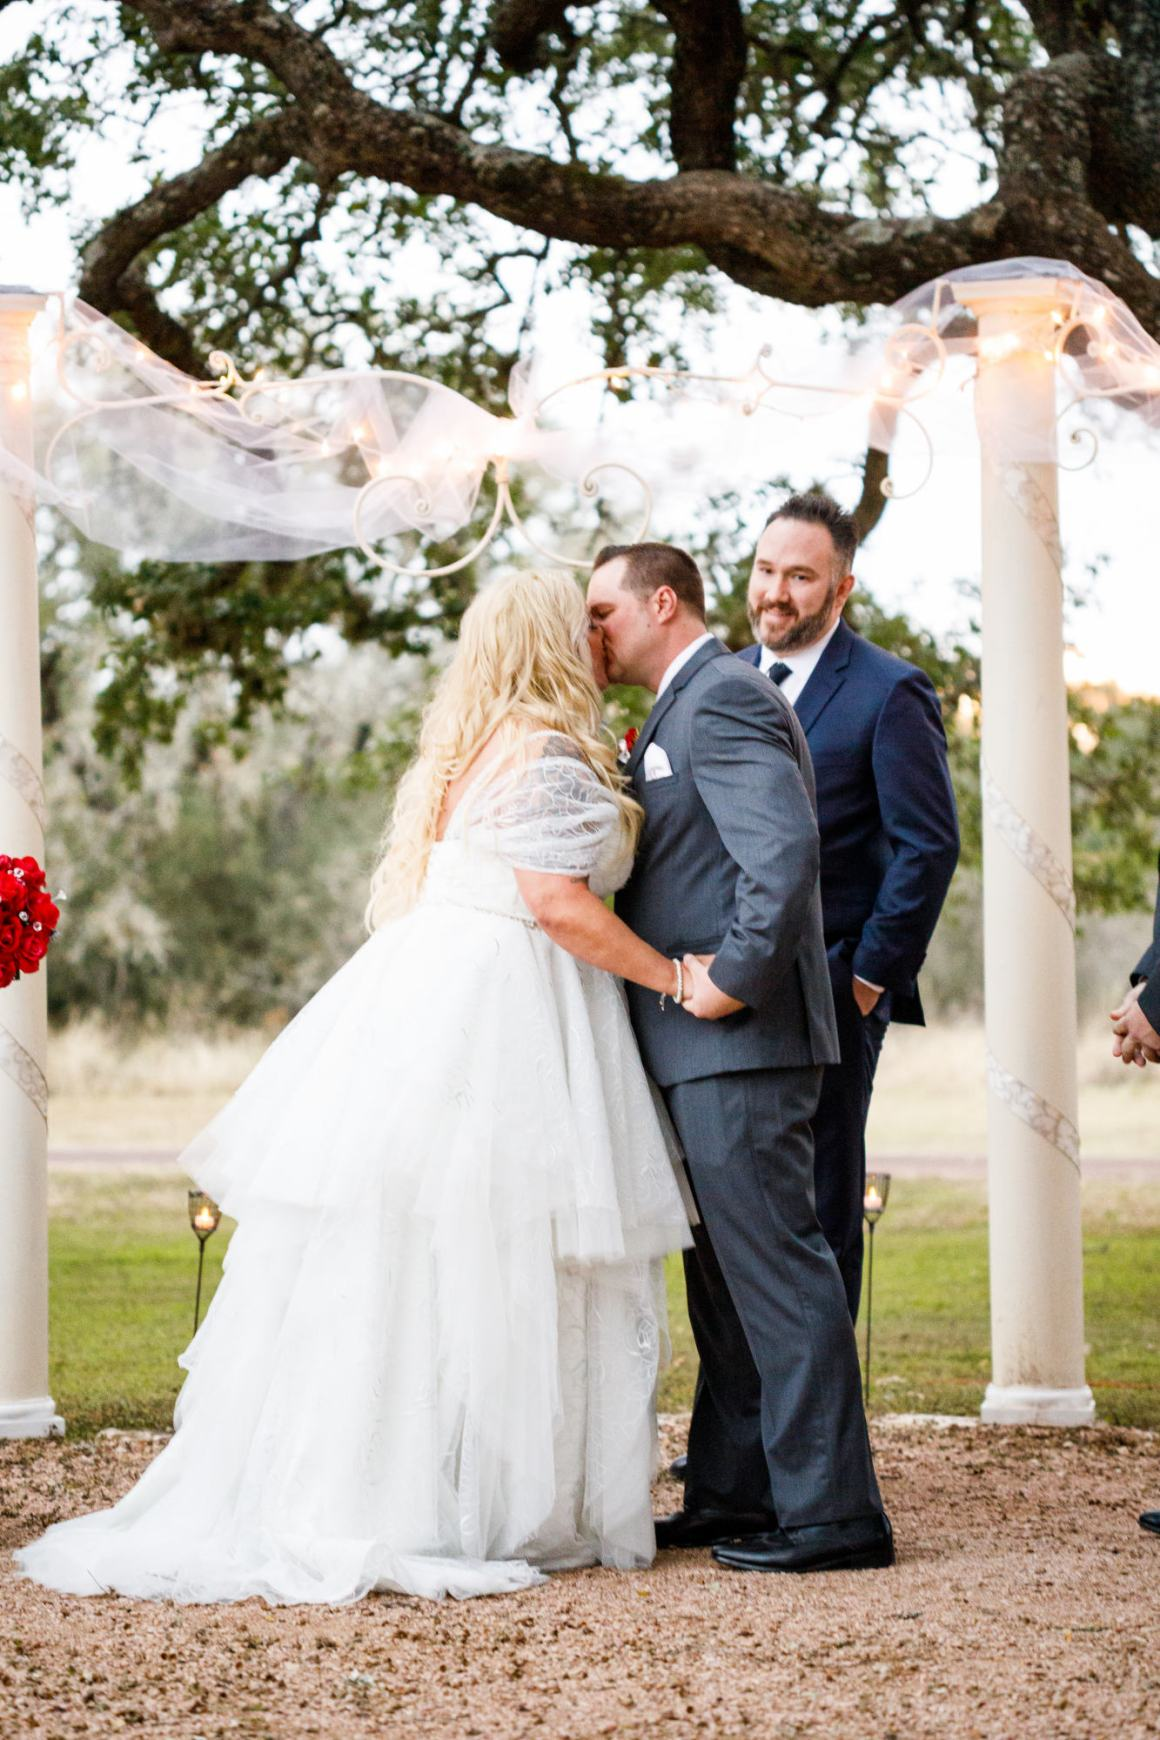 Bride and groom have their first kiss during their Buda wedding at Ruby Ranch Lodge near Austin, TX.